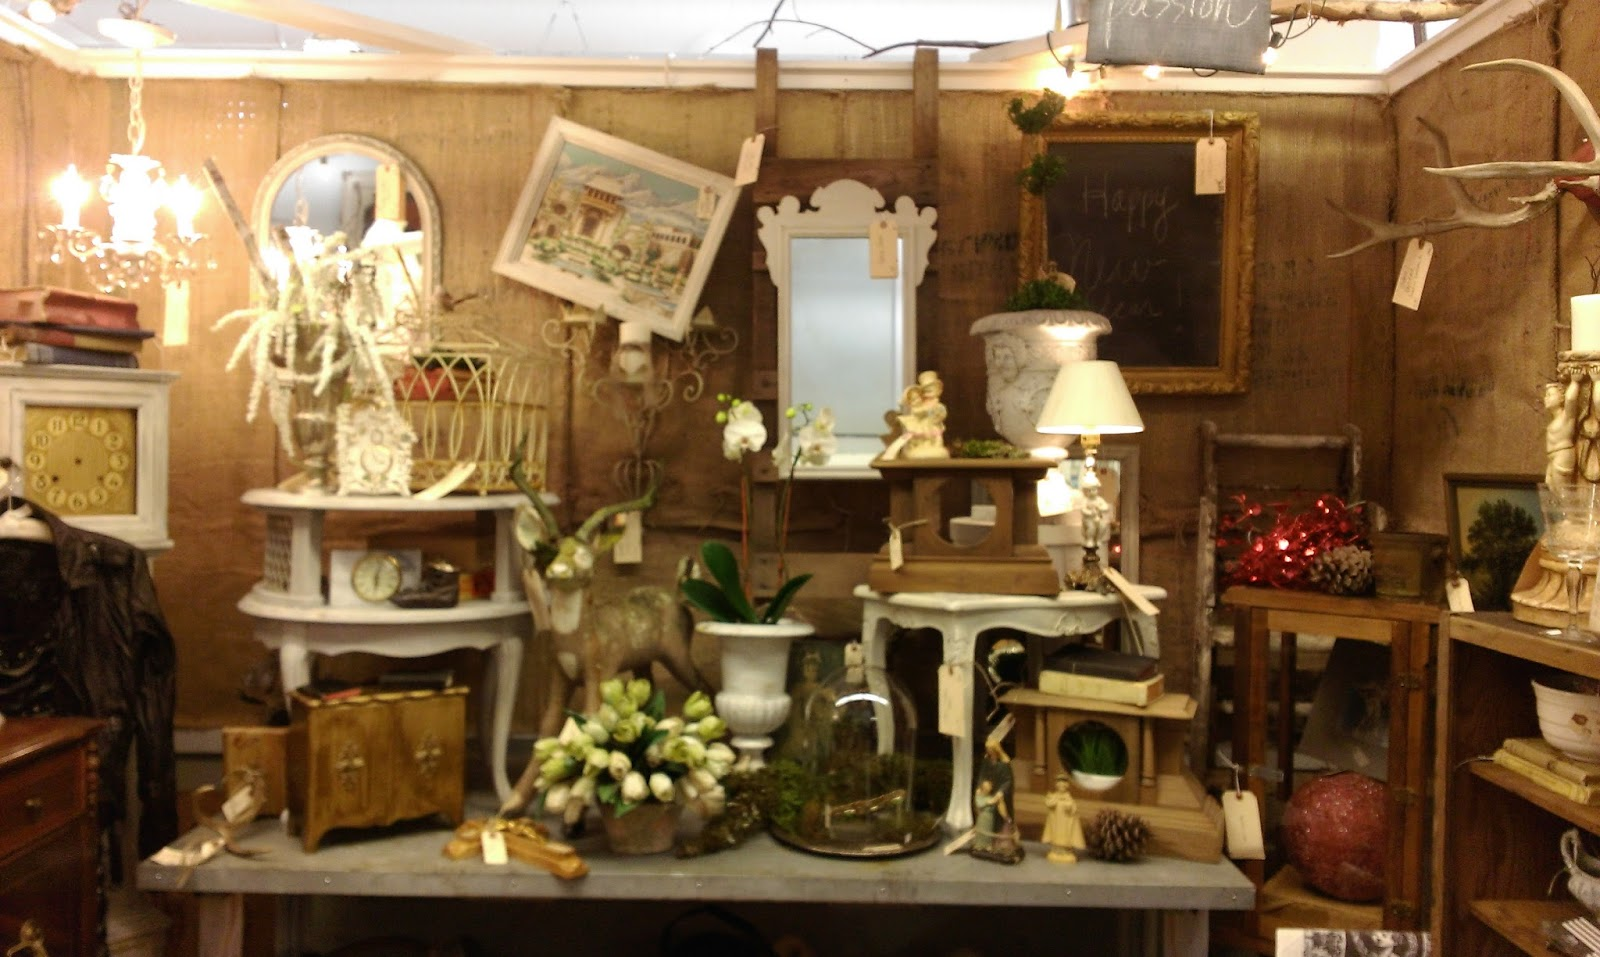 https://www.facebook.com/camasantiqueshome